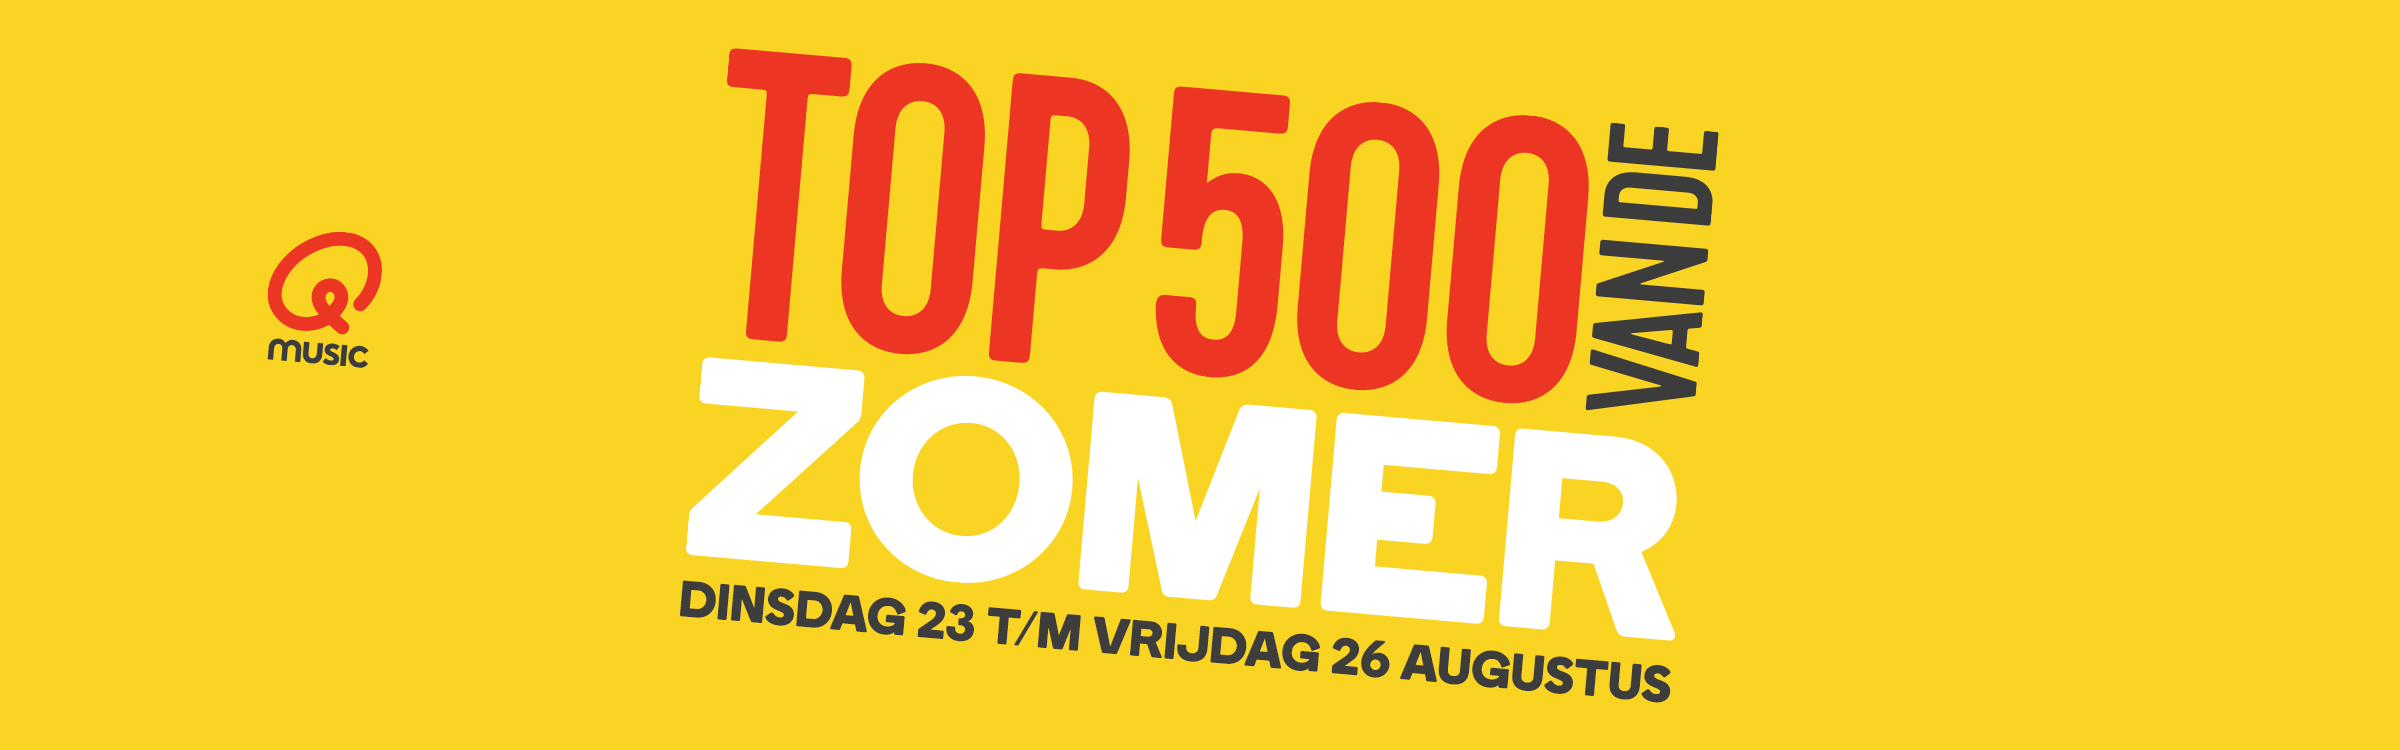 Qmusic actionheader top500zomer 2